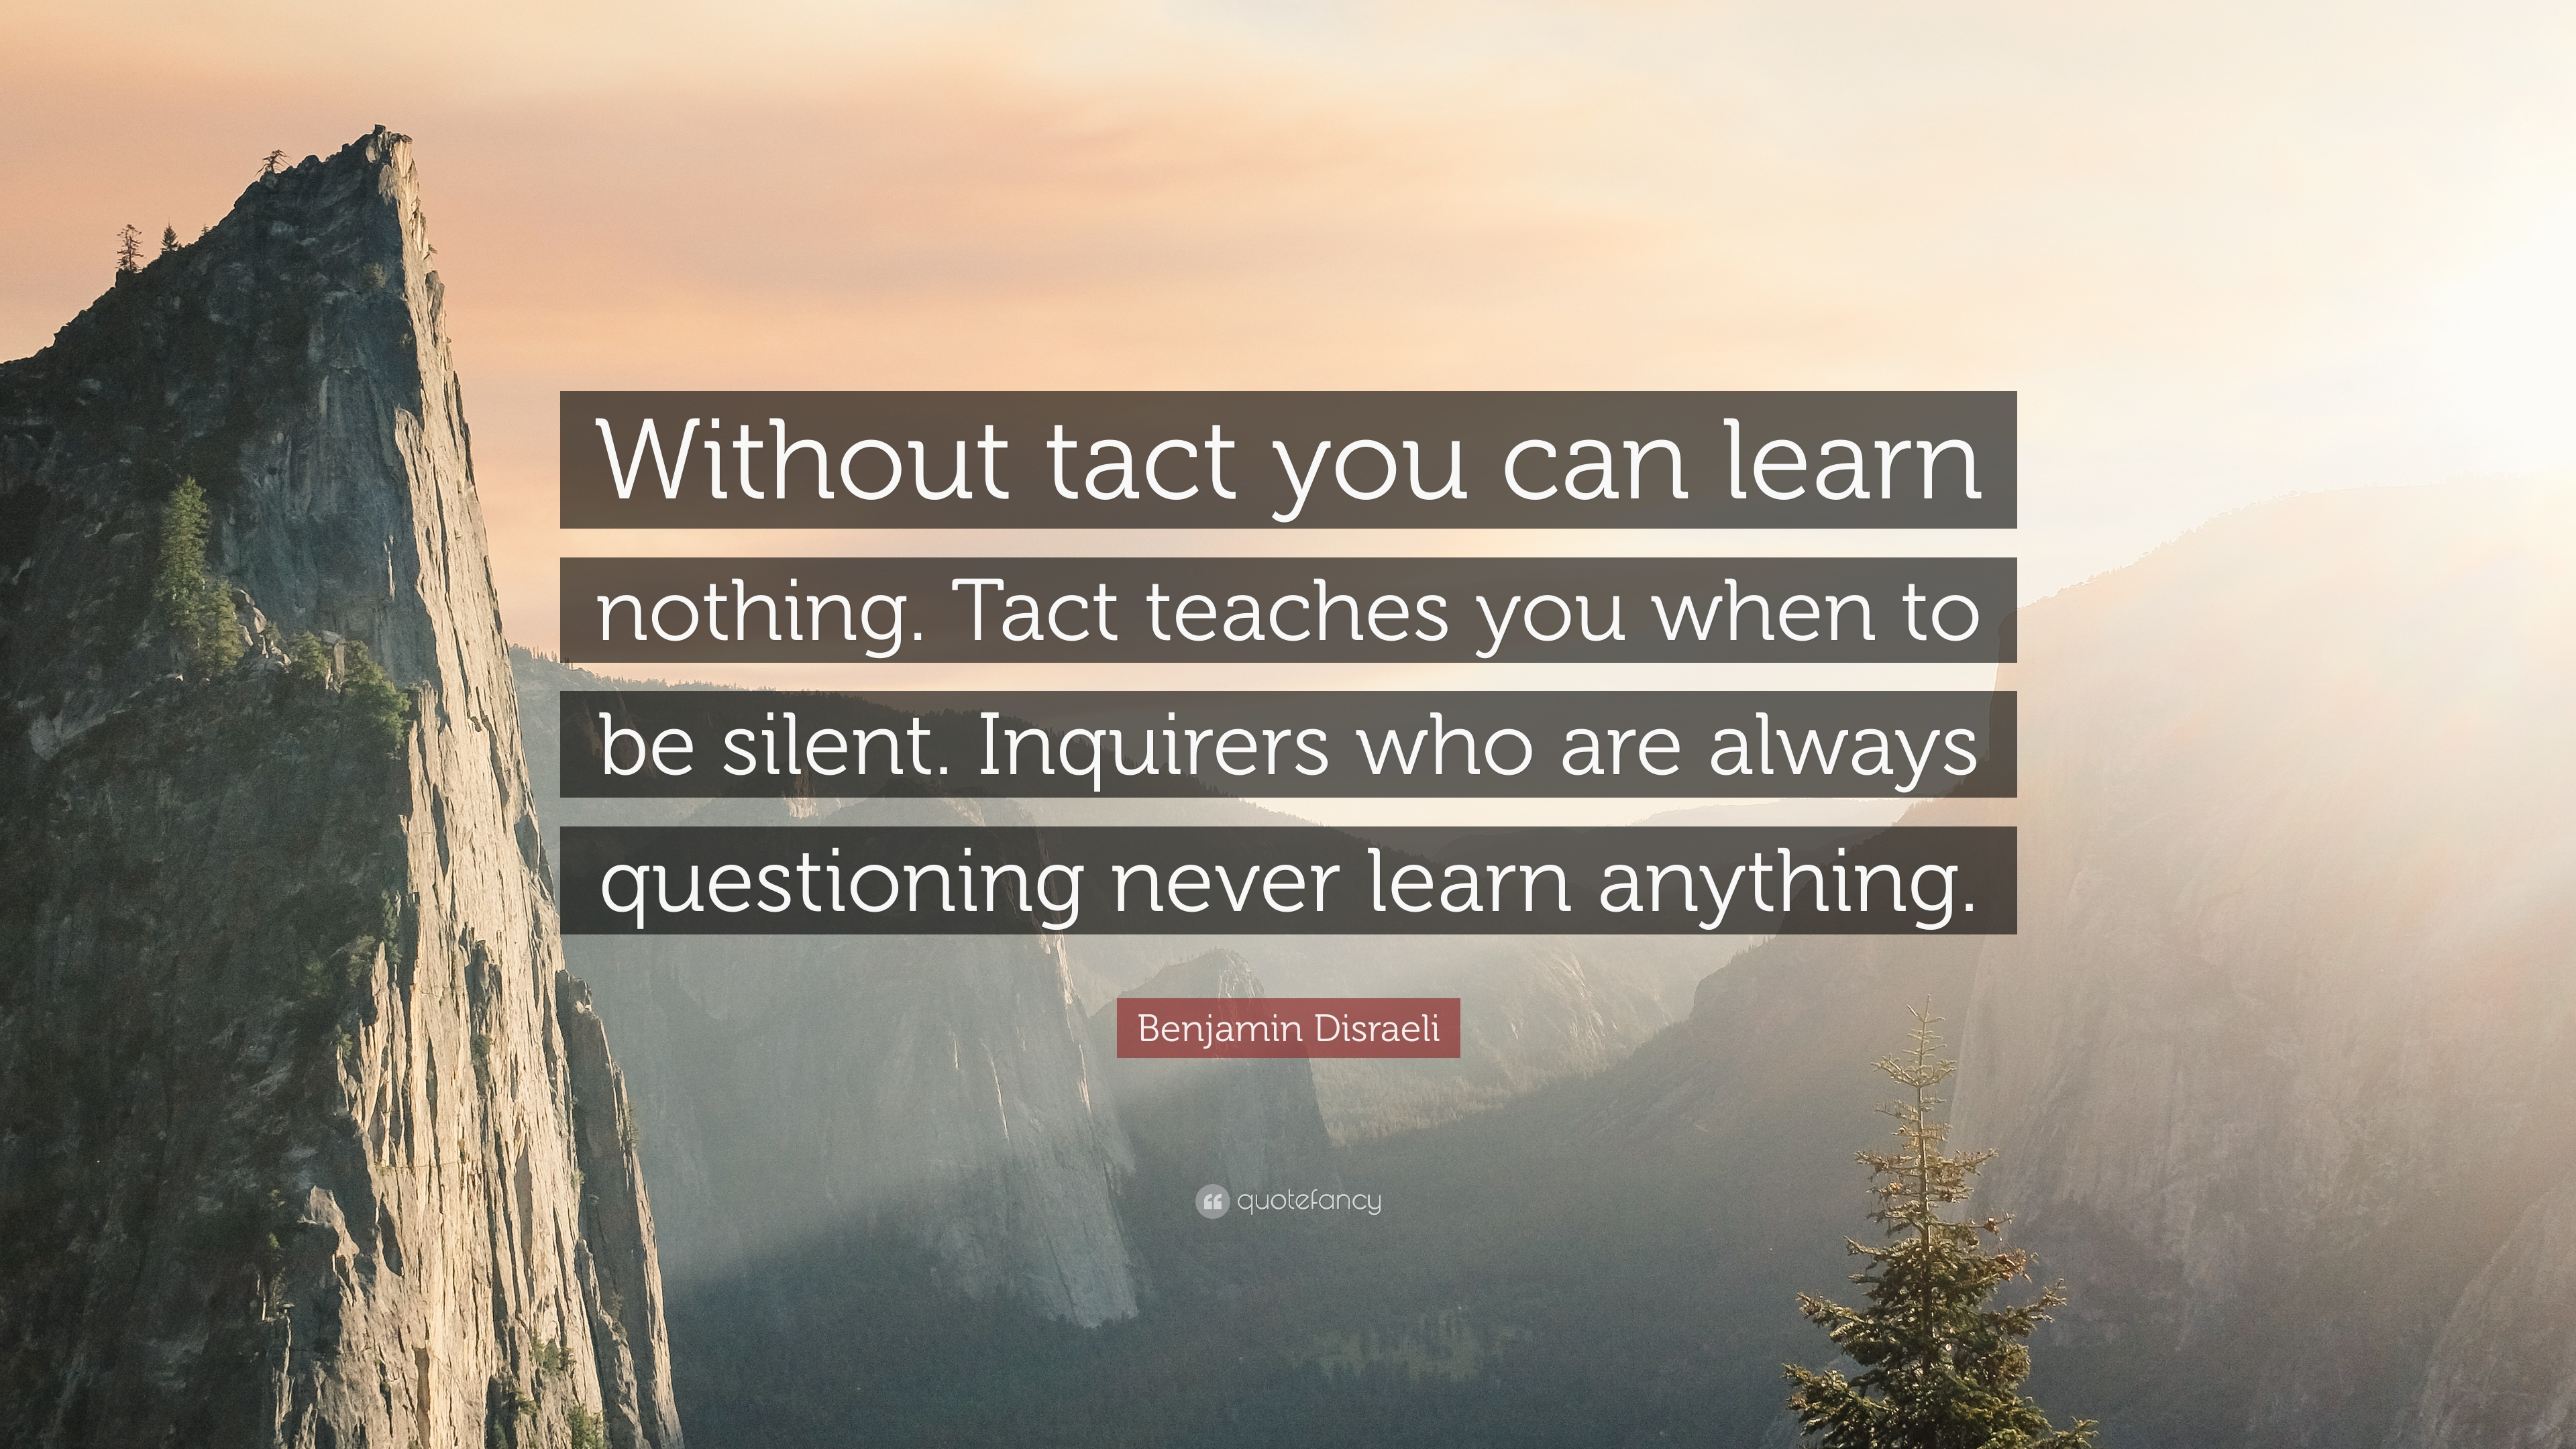 Attractive Benjamin Disraeli Quote: U201cWithout Tact You Can Learn Nothing. Tact Teaches  You When